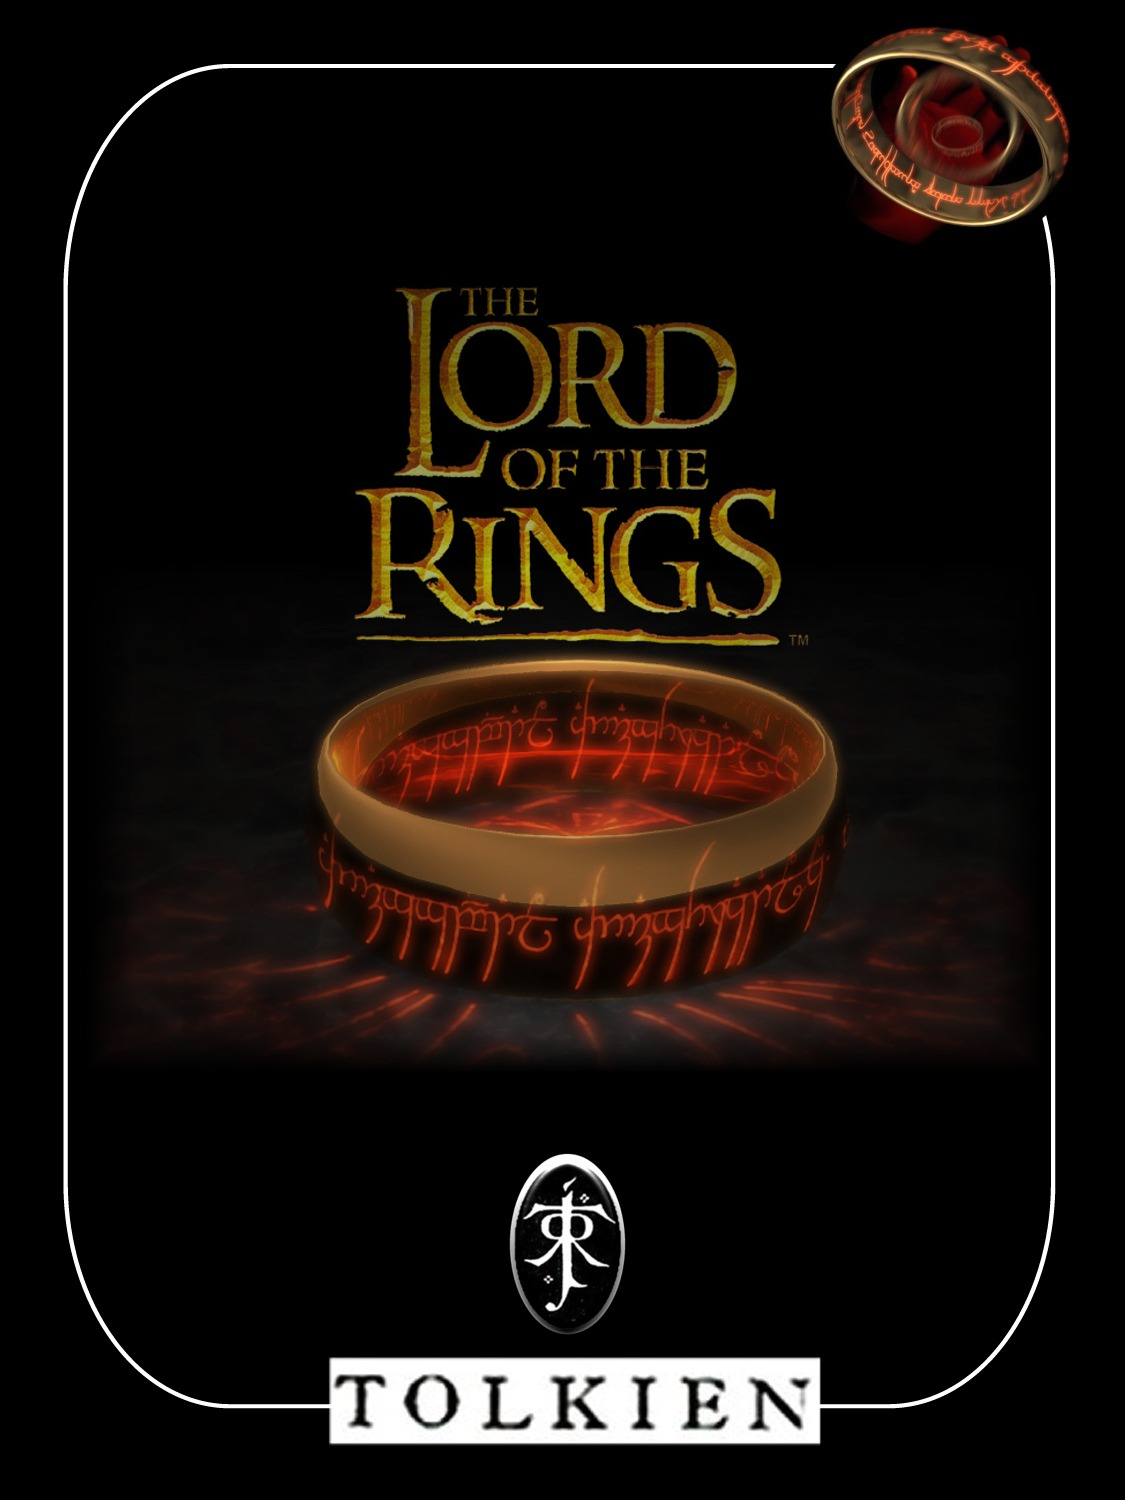 Boekcover The lord of the rings